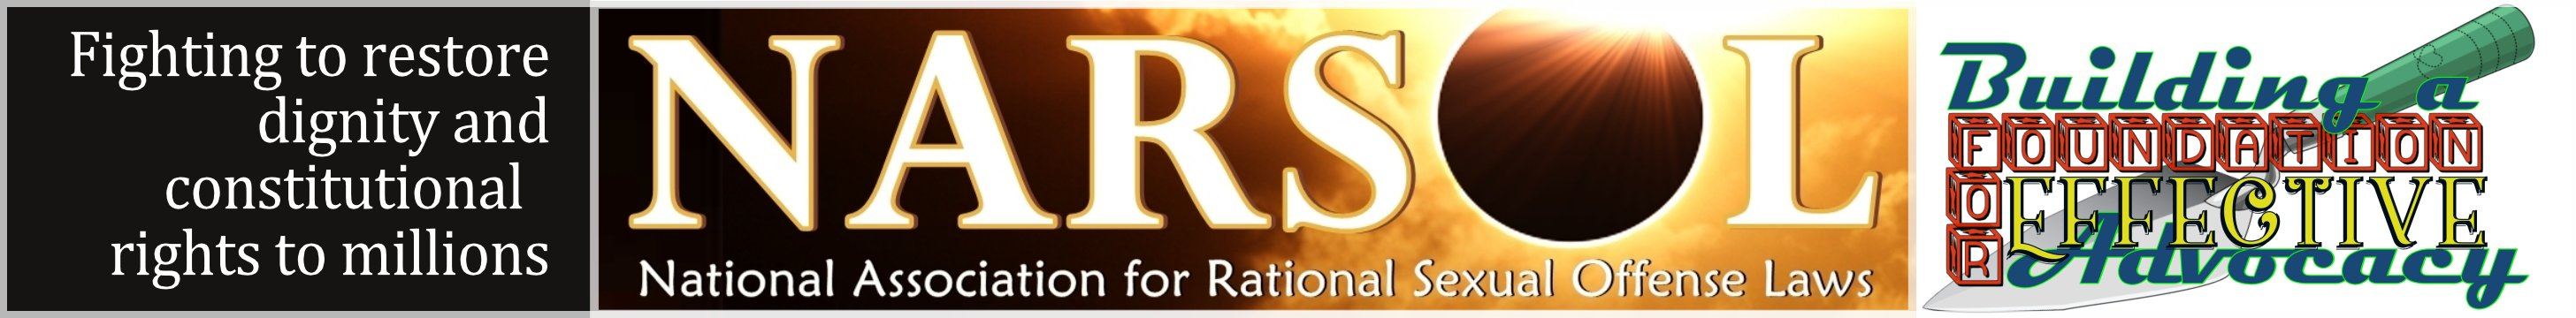 NARSOL - National Association for Rational Sexual Offense Laws